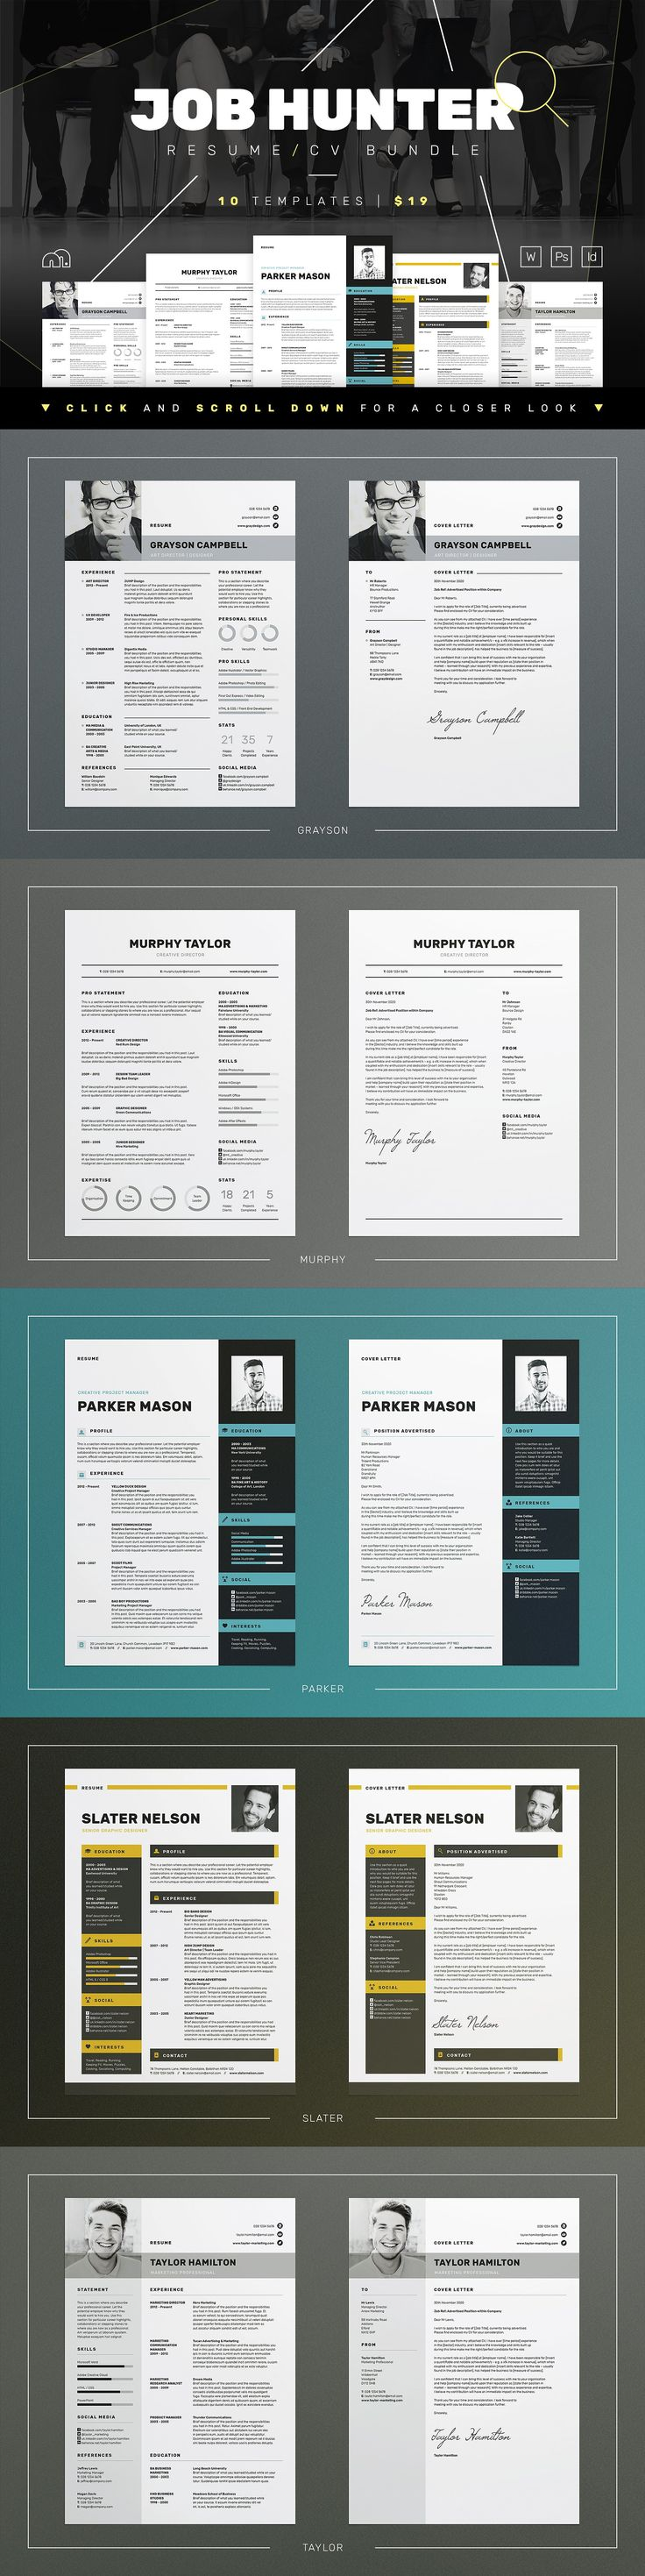 JOB HUNTER - Resume/CV Bundle by bilmaw creative on @creativemarket This collection of 10 modern template designs are the perfect match for any profession. Easy to edit and personalise, you can apply for that last minute job application with no hassle, impress your future employer and secure that important interview!!